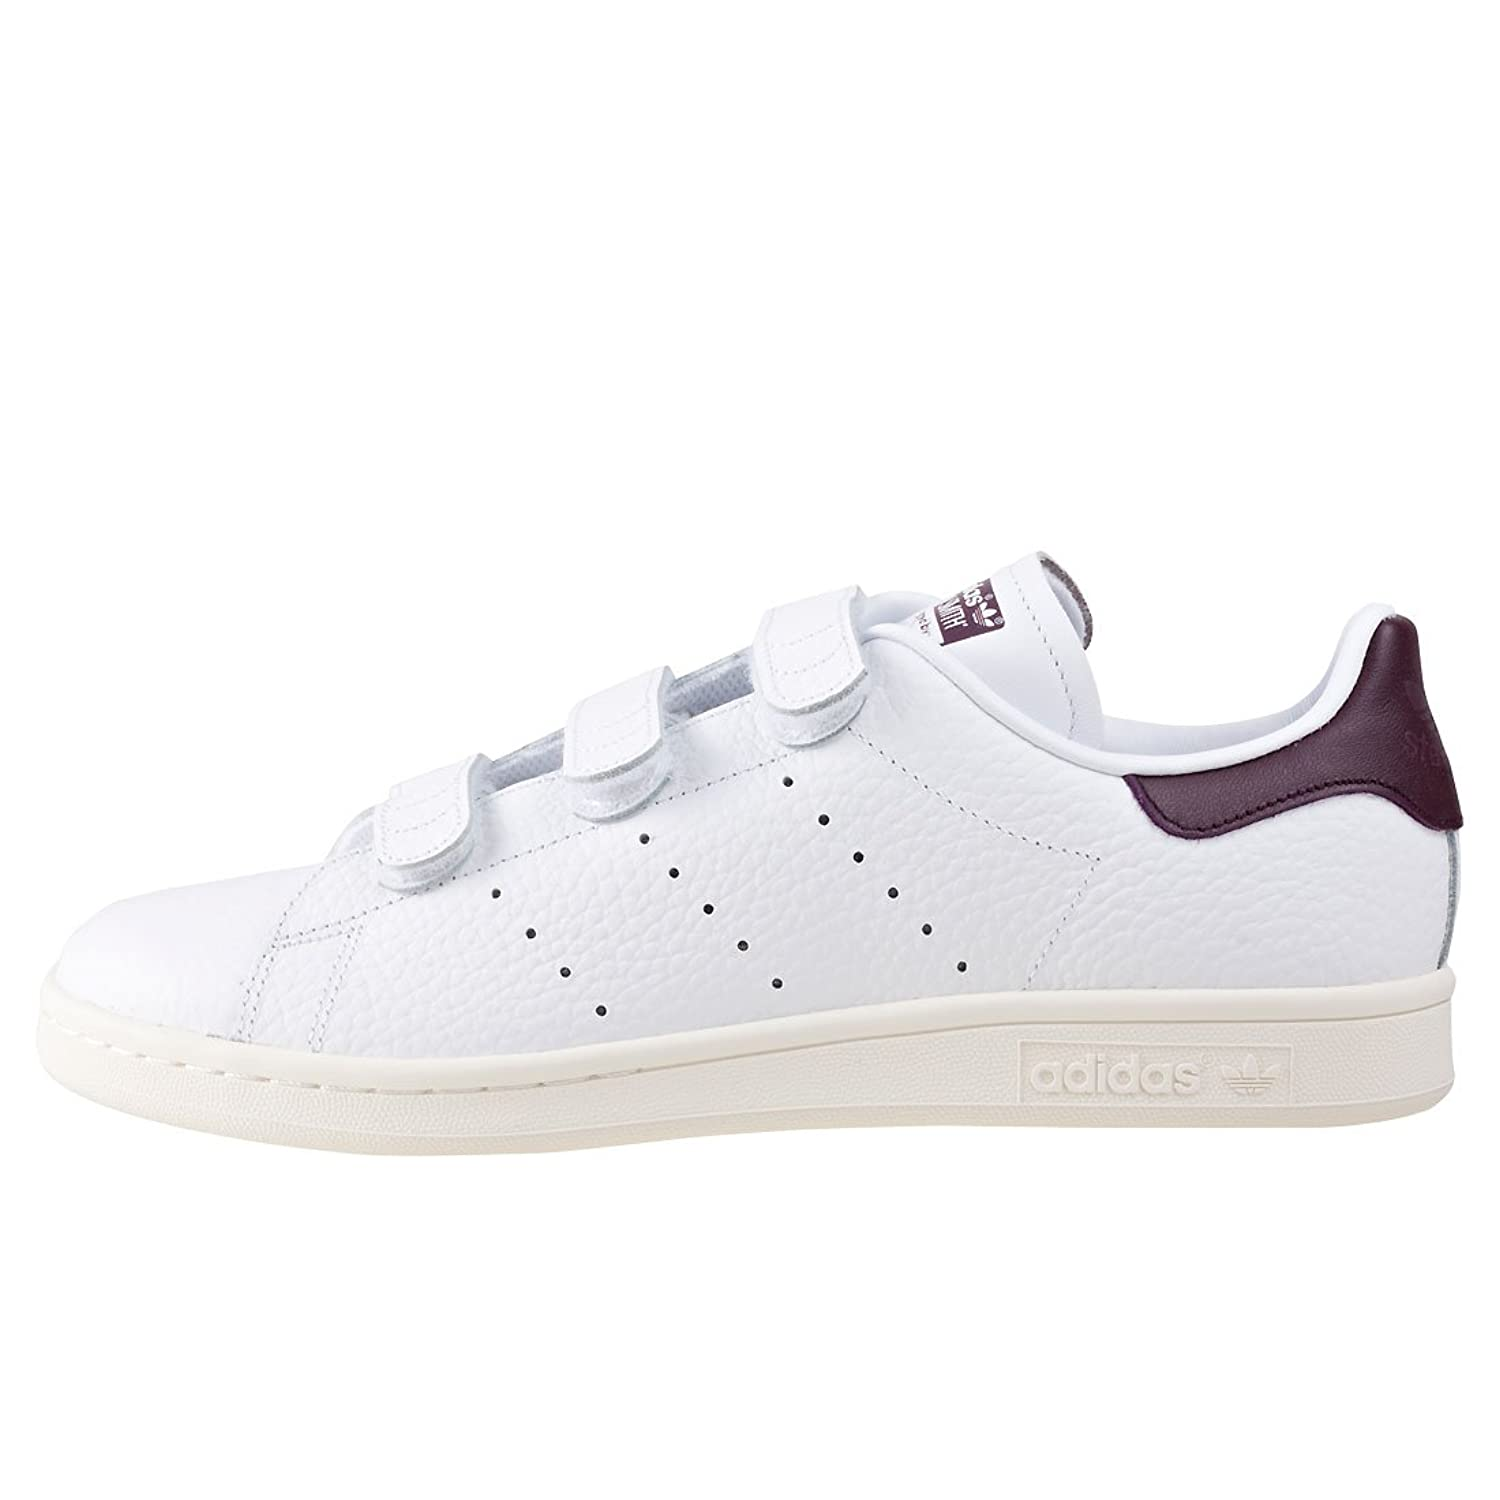 save off c9819 97bf3 adidas Stan Smith CF, Chaussures de Sport Homme - Blanc - Blanc (Ftwbla